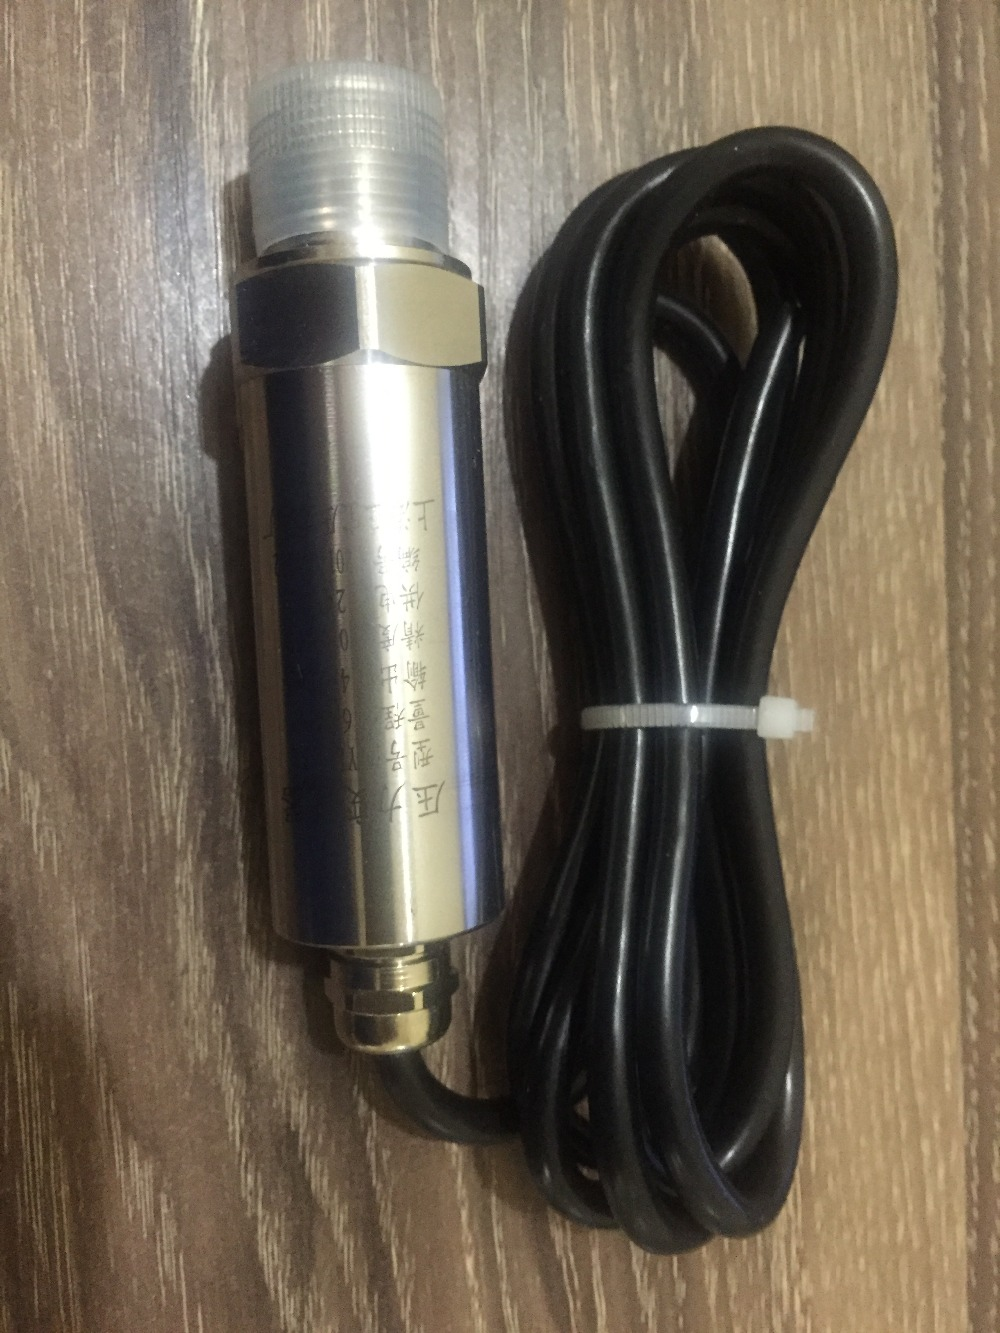 0-160Kpa Waterproof Lead Wire Straight Line Pressure Sensor Transmitter 4-20 mA M20*1.50-160Kpa Waterproof Lead Wire Straight Line Pressure Sensor Transmitter 4-20 mA M20*1.5